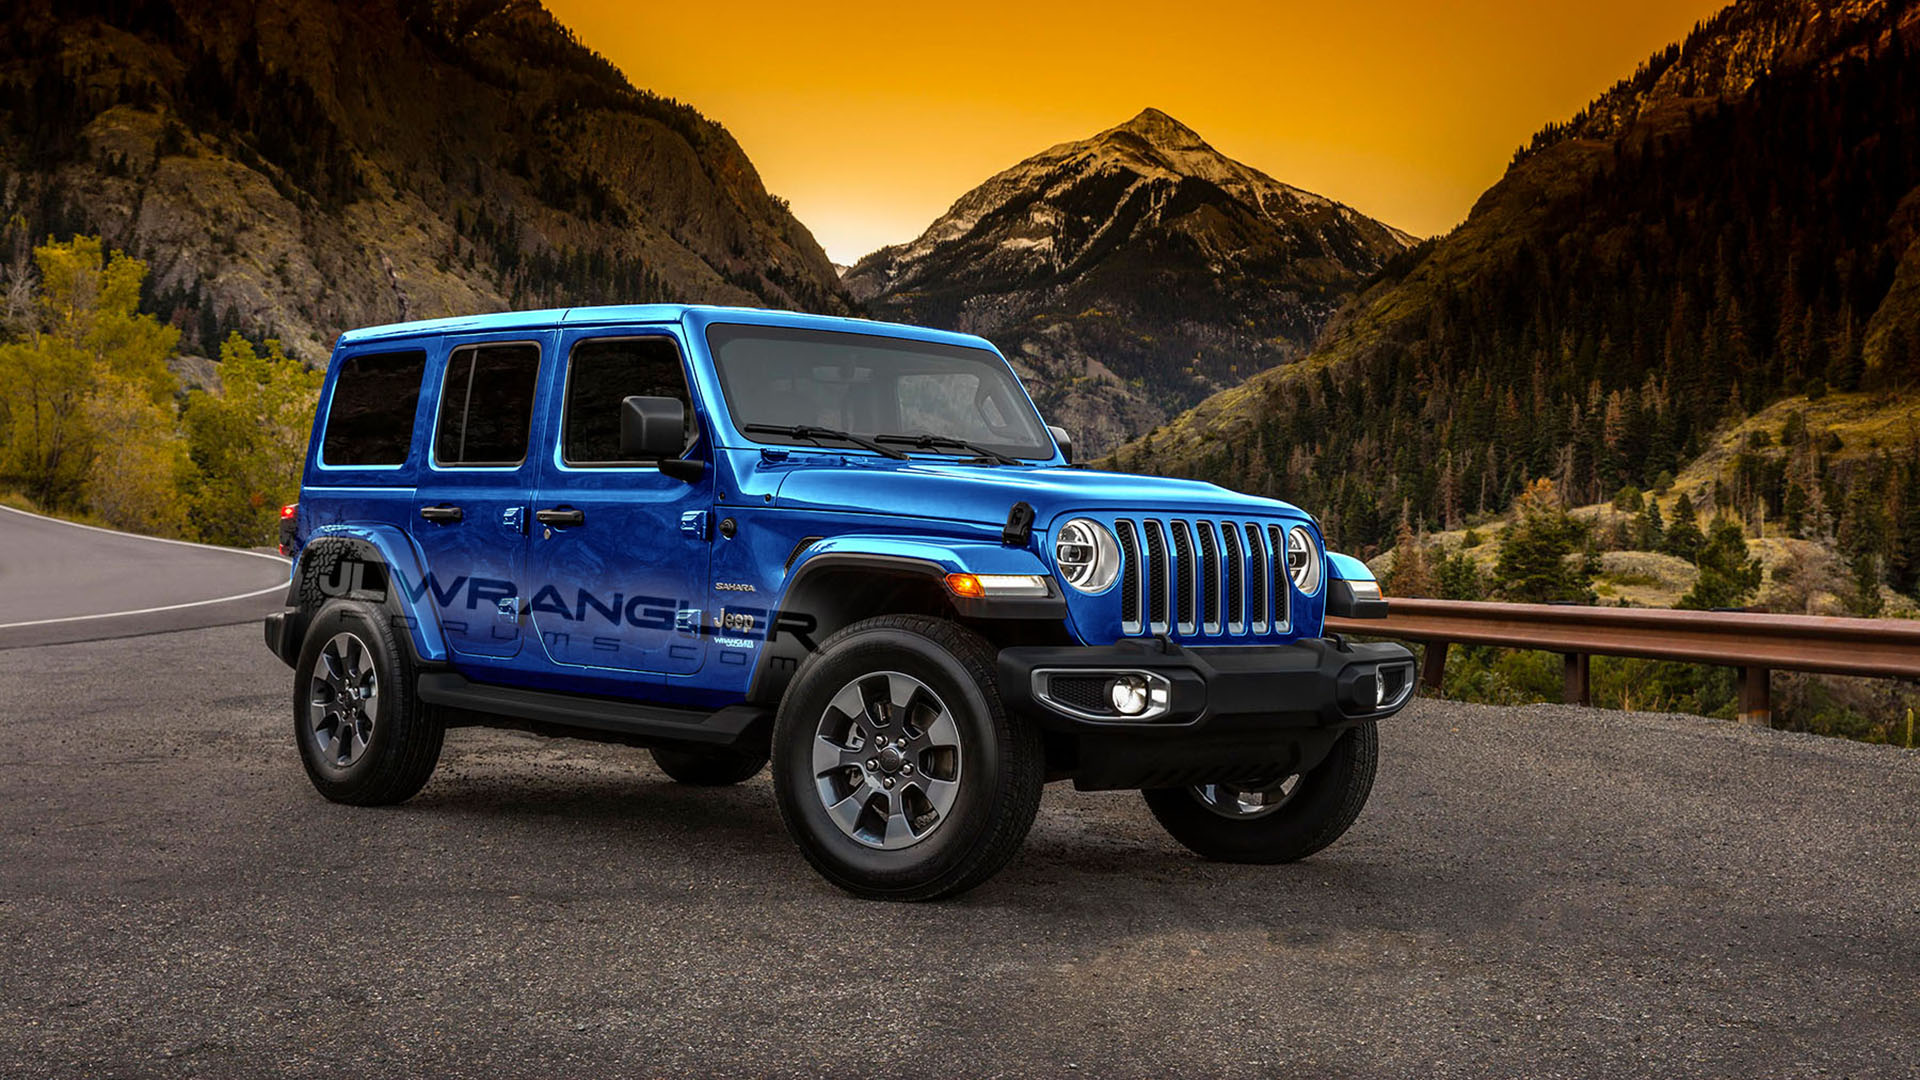 Leaked Dealer Info Shows 2018 Jeep Wrangler Paint Options Include